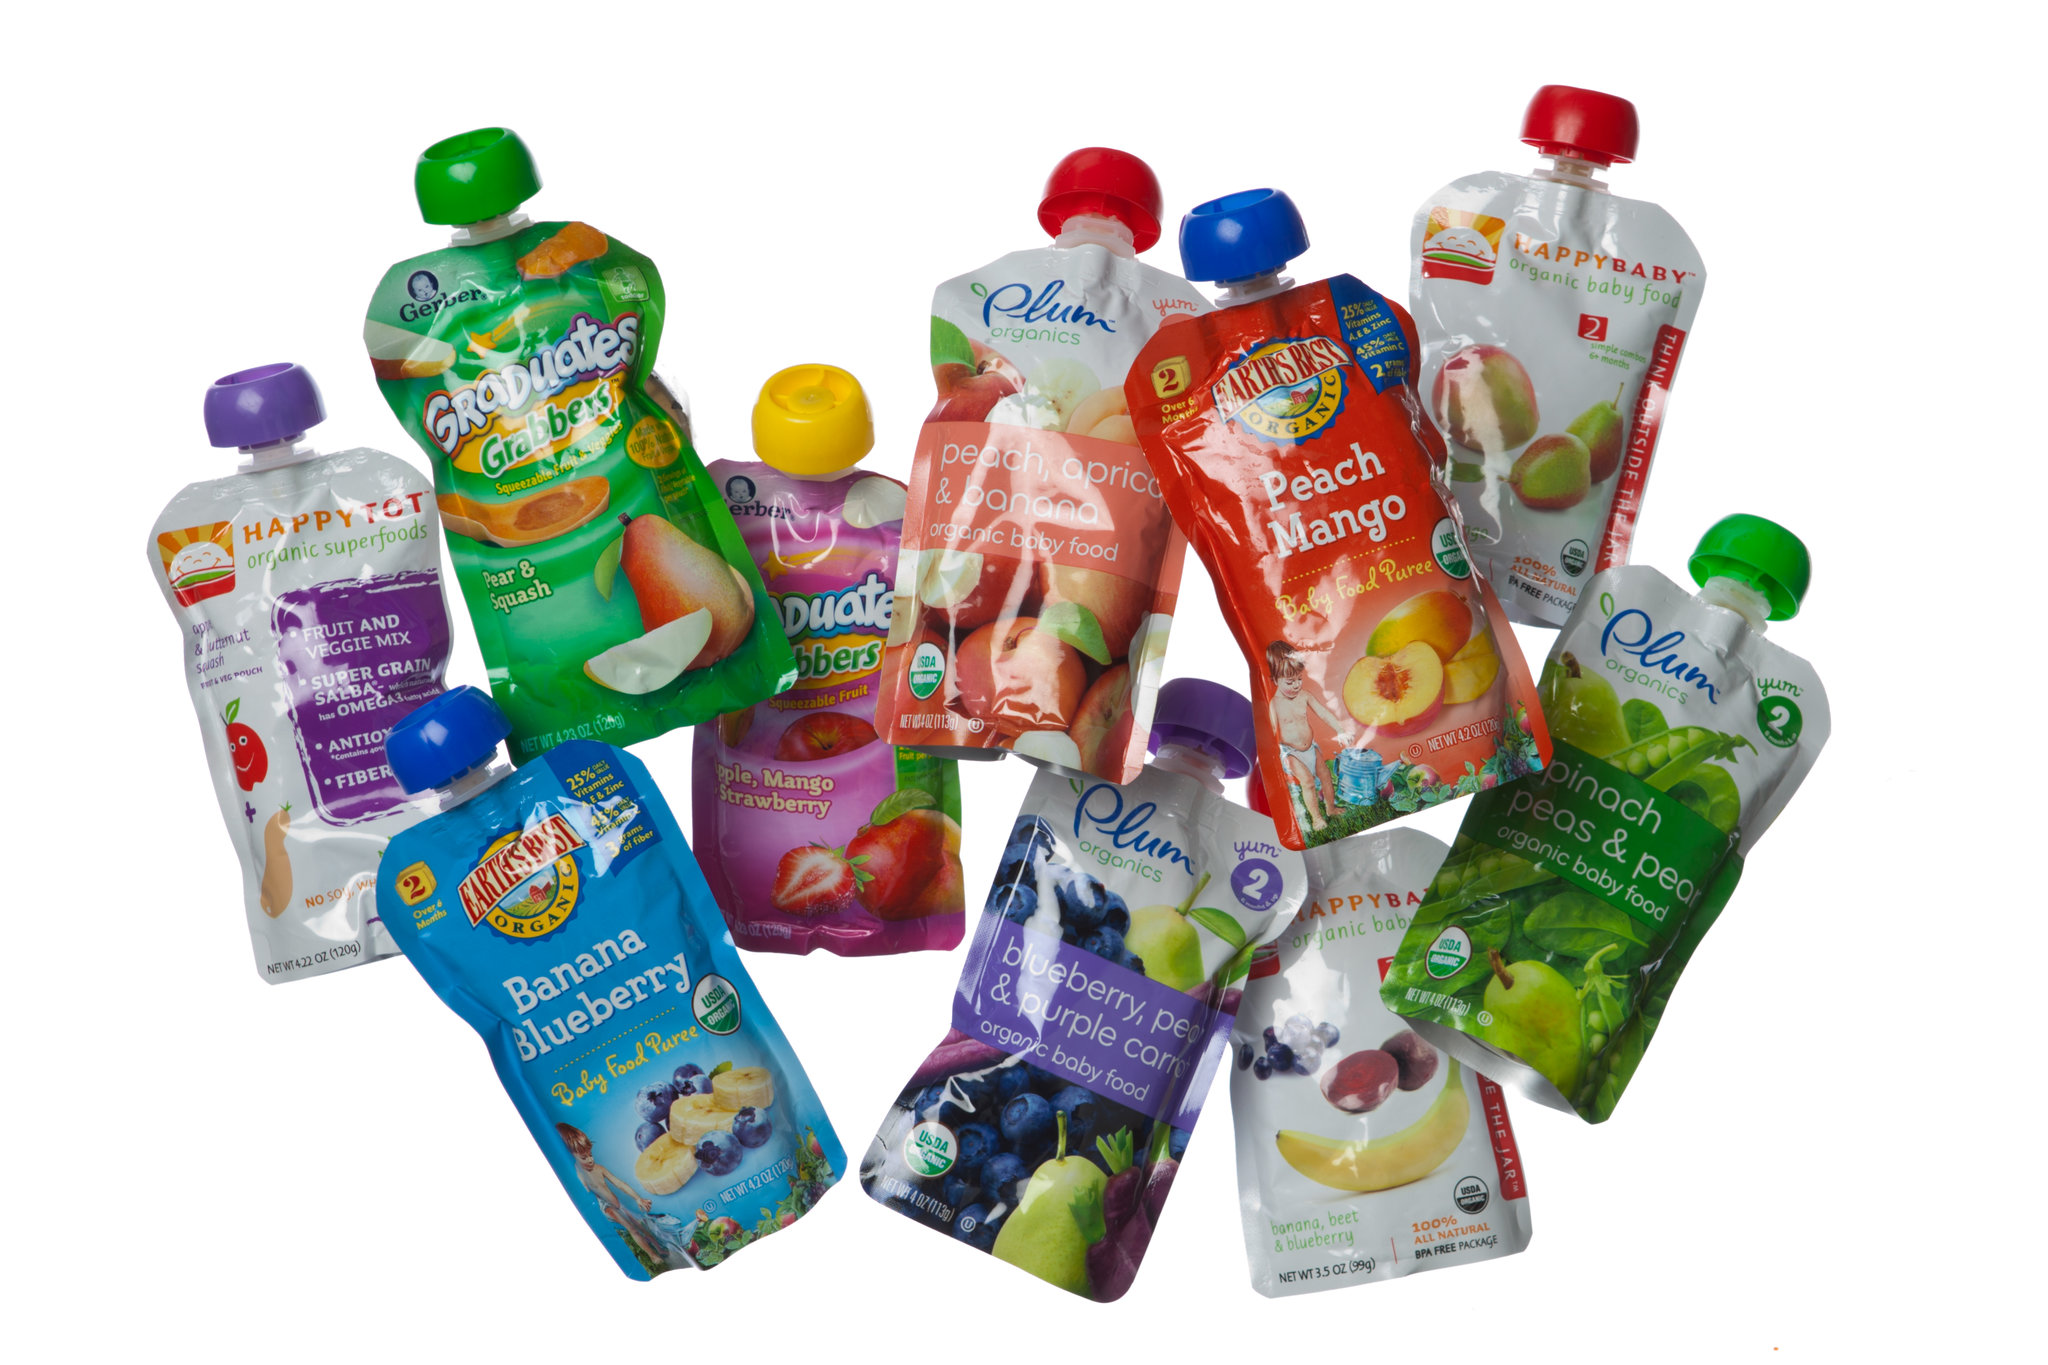 Baby Only Likes Ready Made Formula Rethinking Baby Food Pouches The New York Times